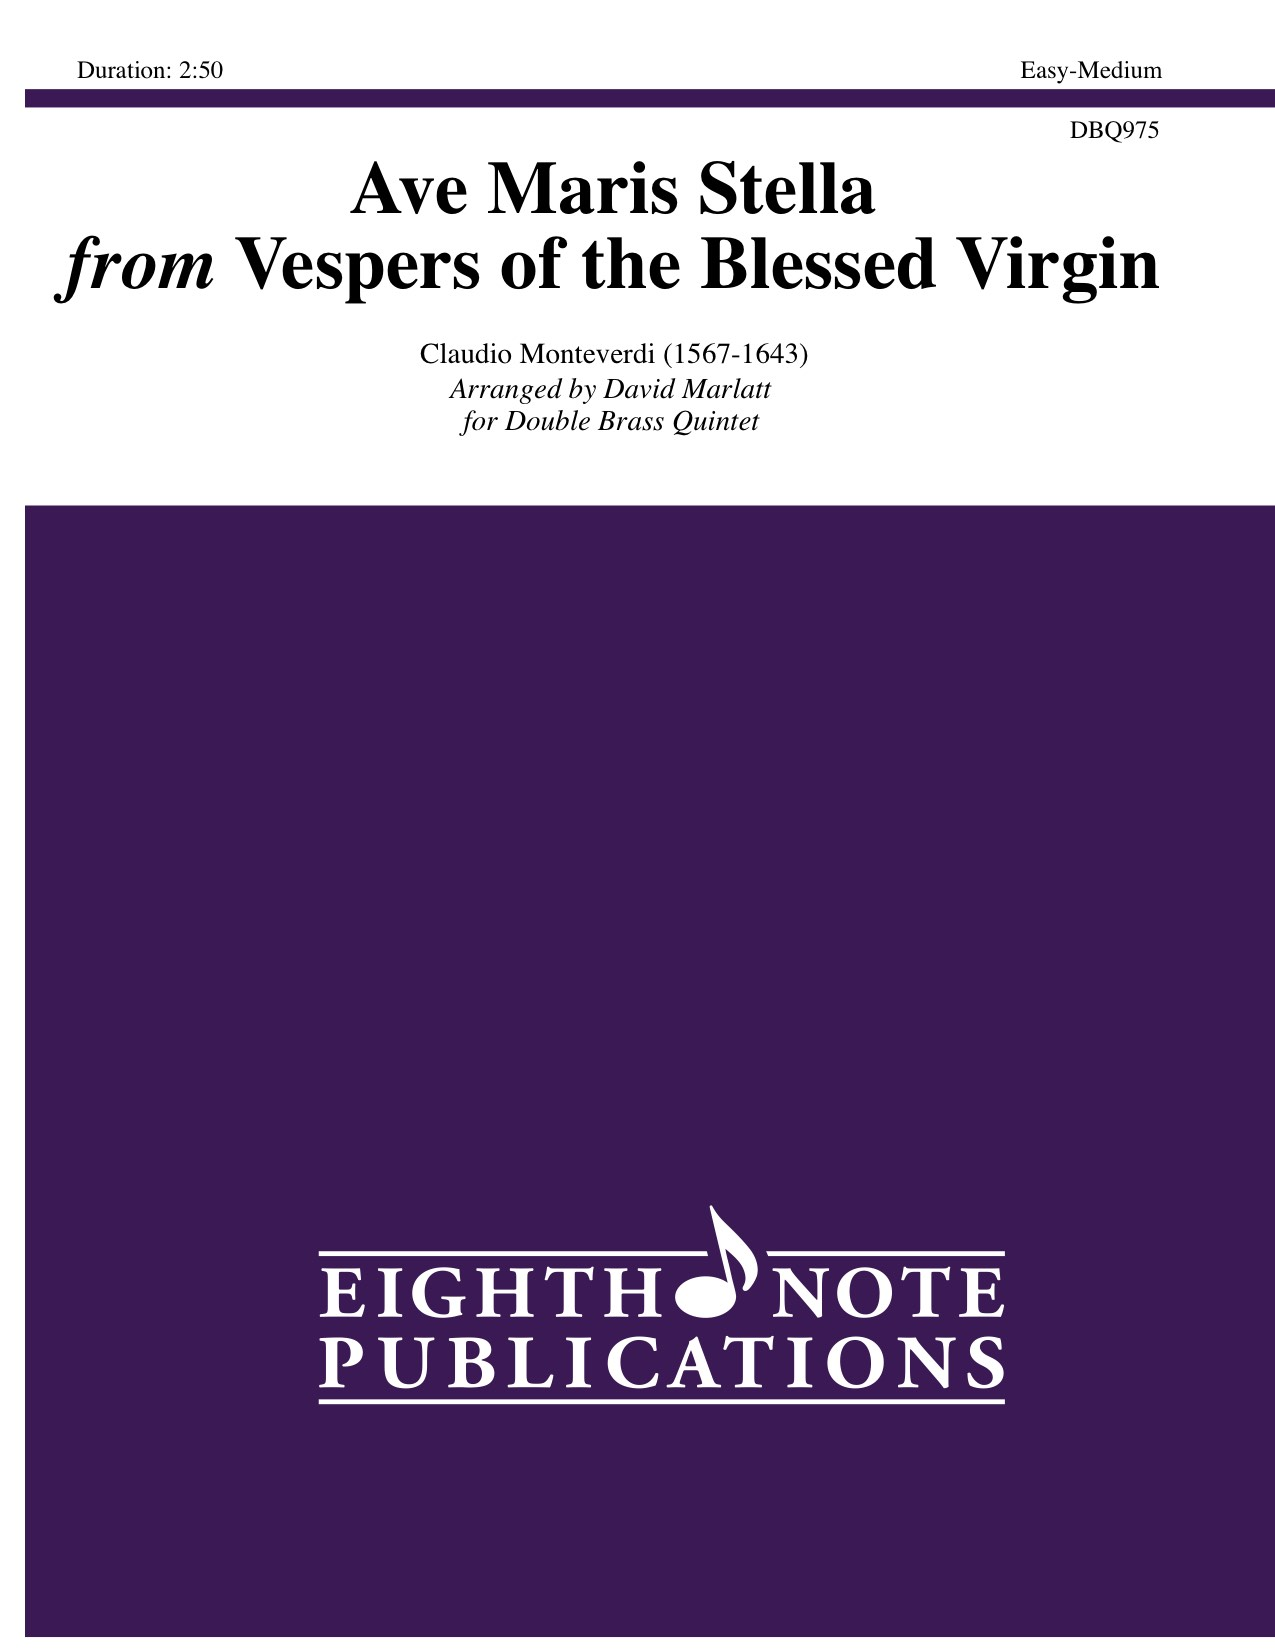 Ave Maris Stella from Vespers of the Blessed Virgin - Claudio Monteverdi